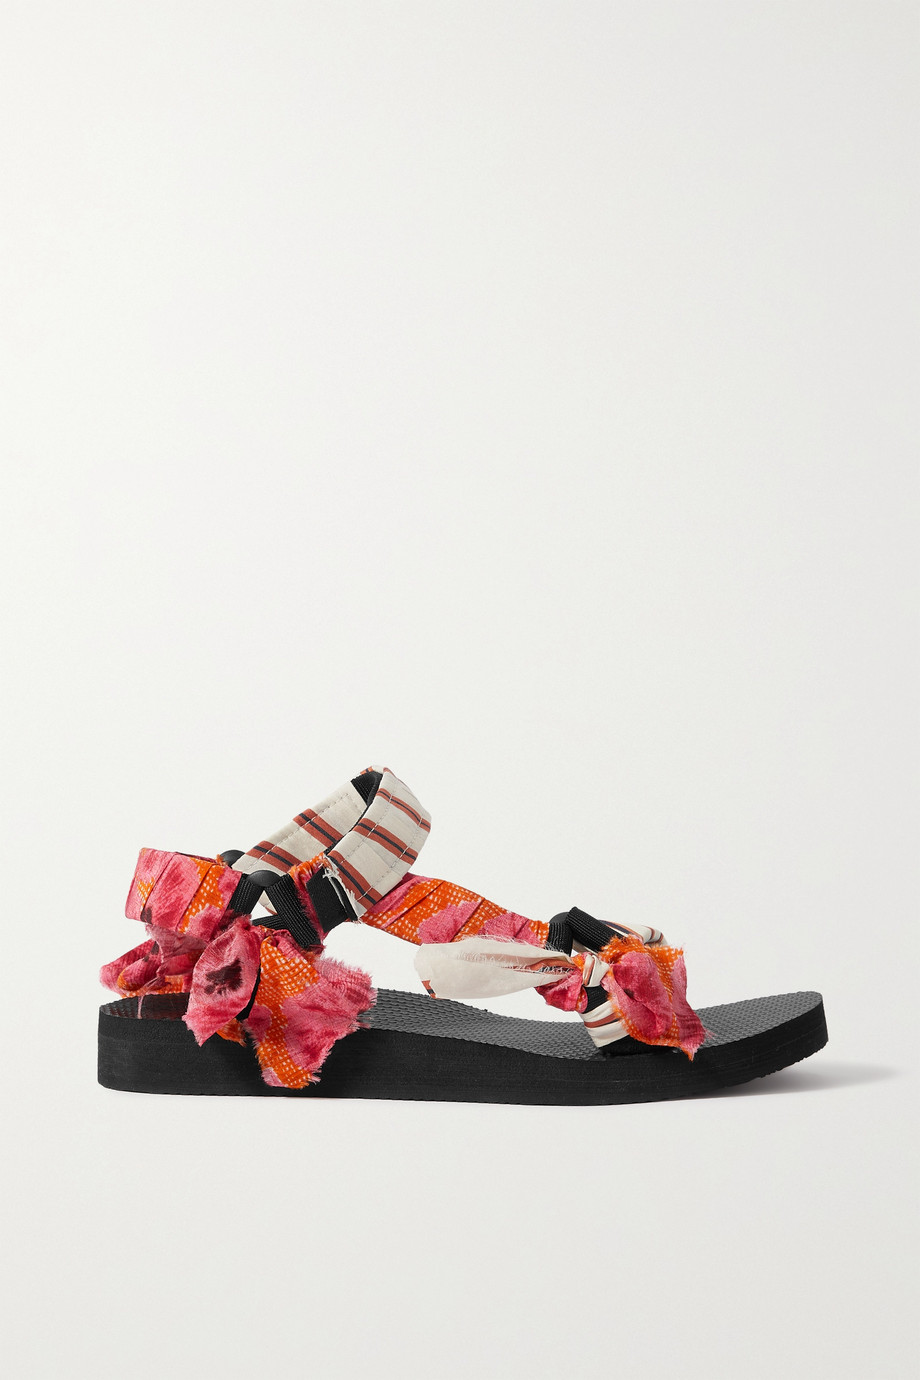 ARIZONA LOVE + Jason Wu Trekky printed cotton, gauze and canvas sandals